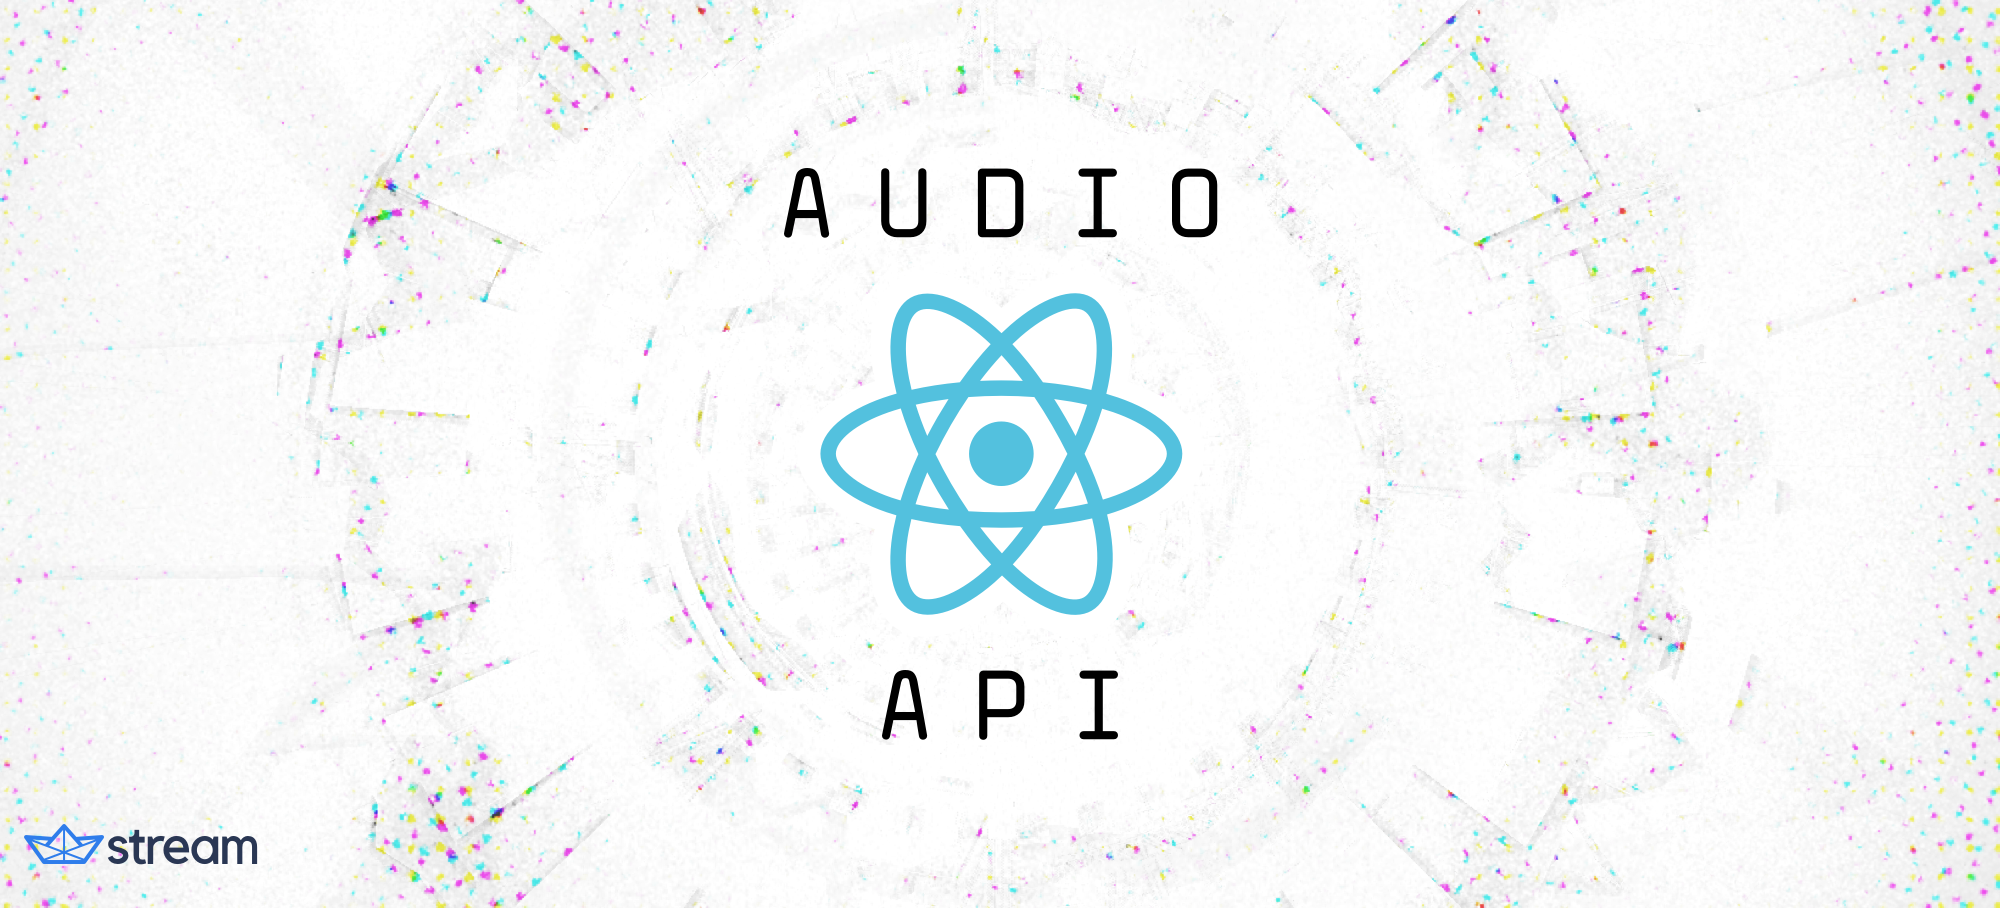 Experimenting with React Native & Expo's Audio API | The Stream Blog